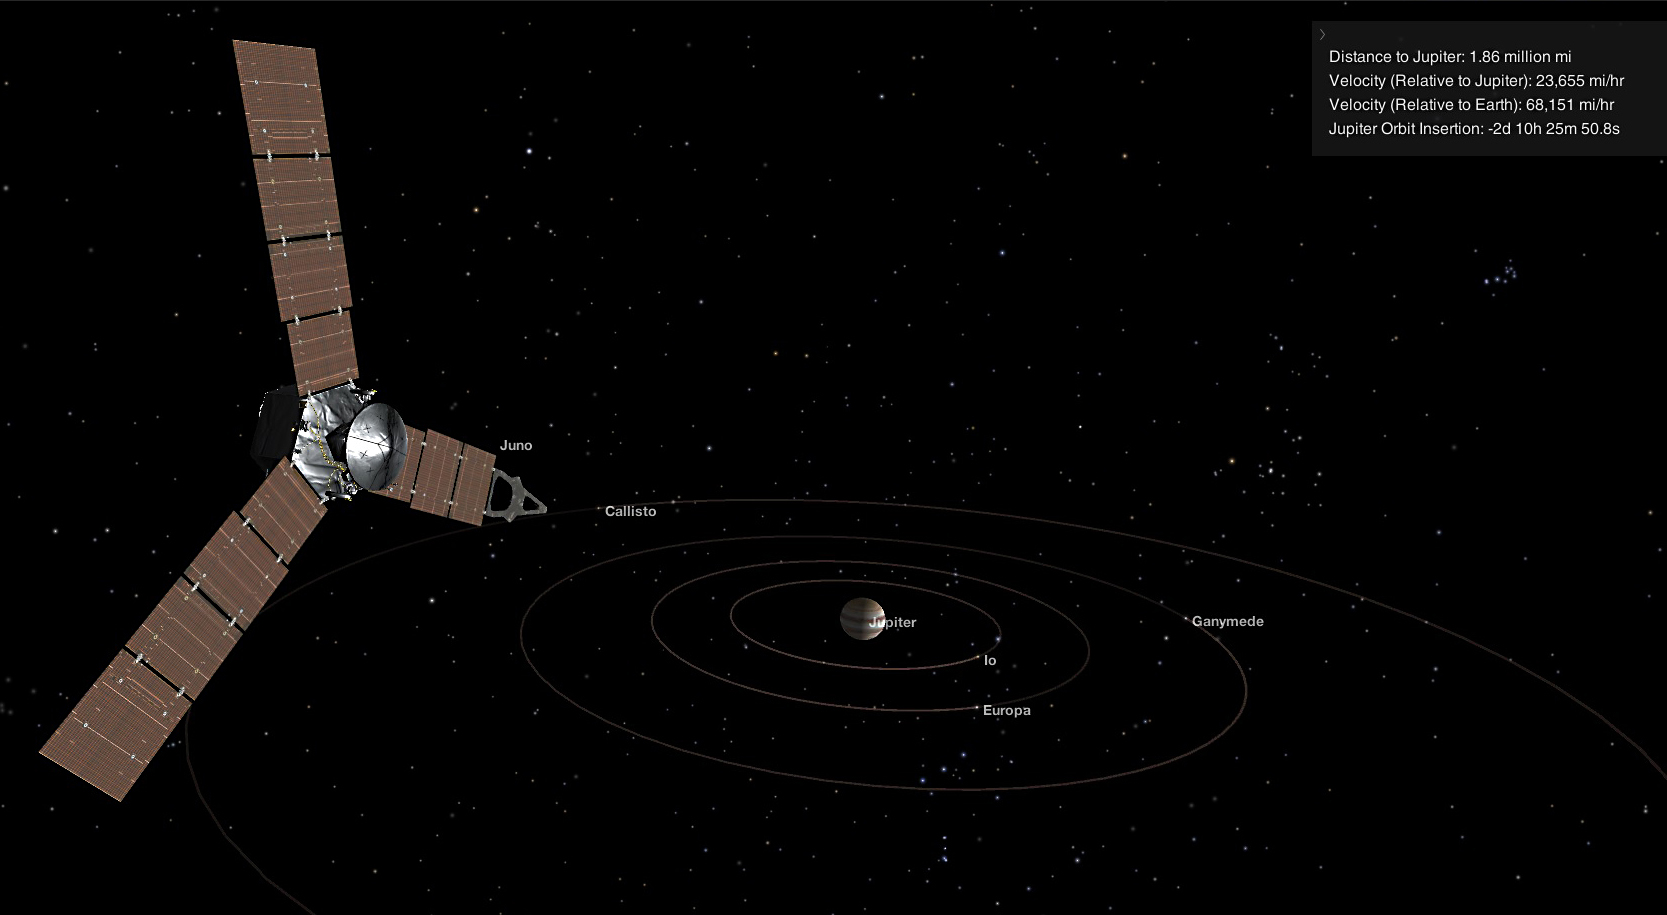 juno enters orbit around jupiter nasa